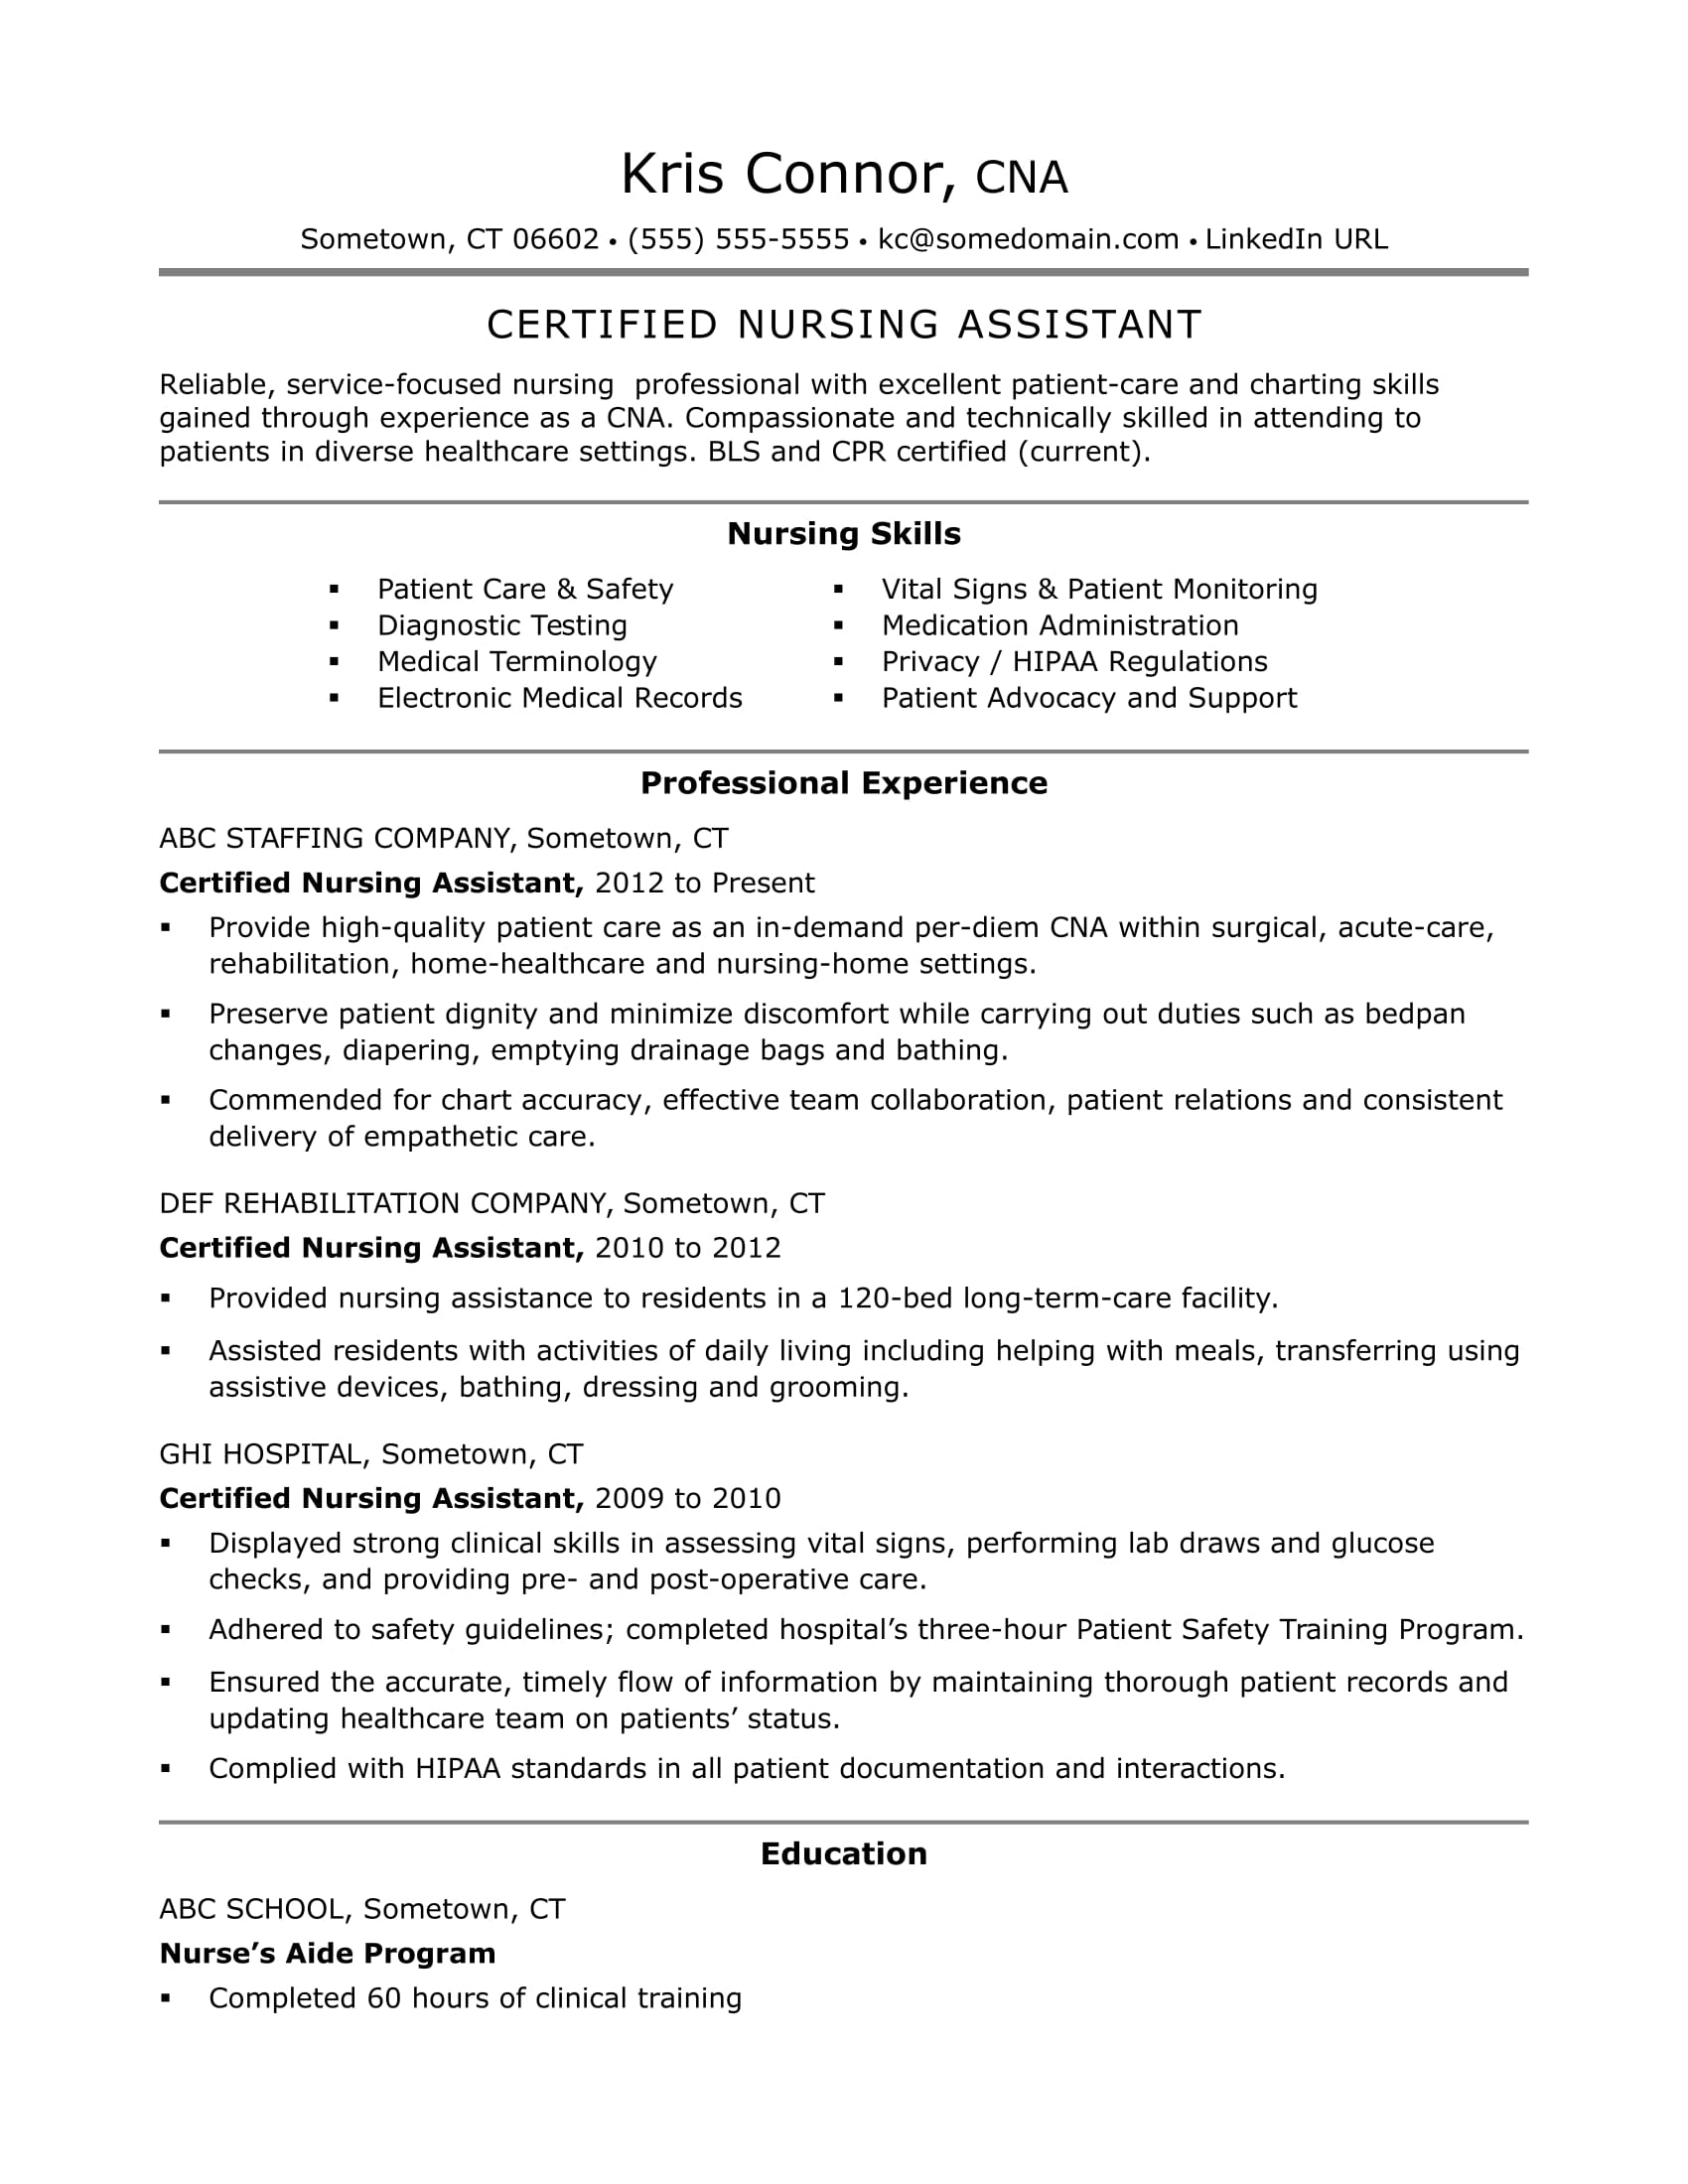 cna resume examples skills for cnas monster assisted living duties certified nursing Resume Assisted Living Duties Resume